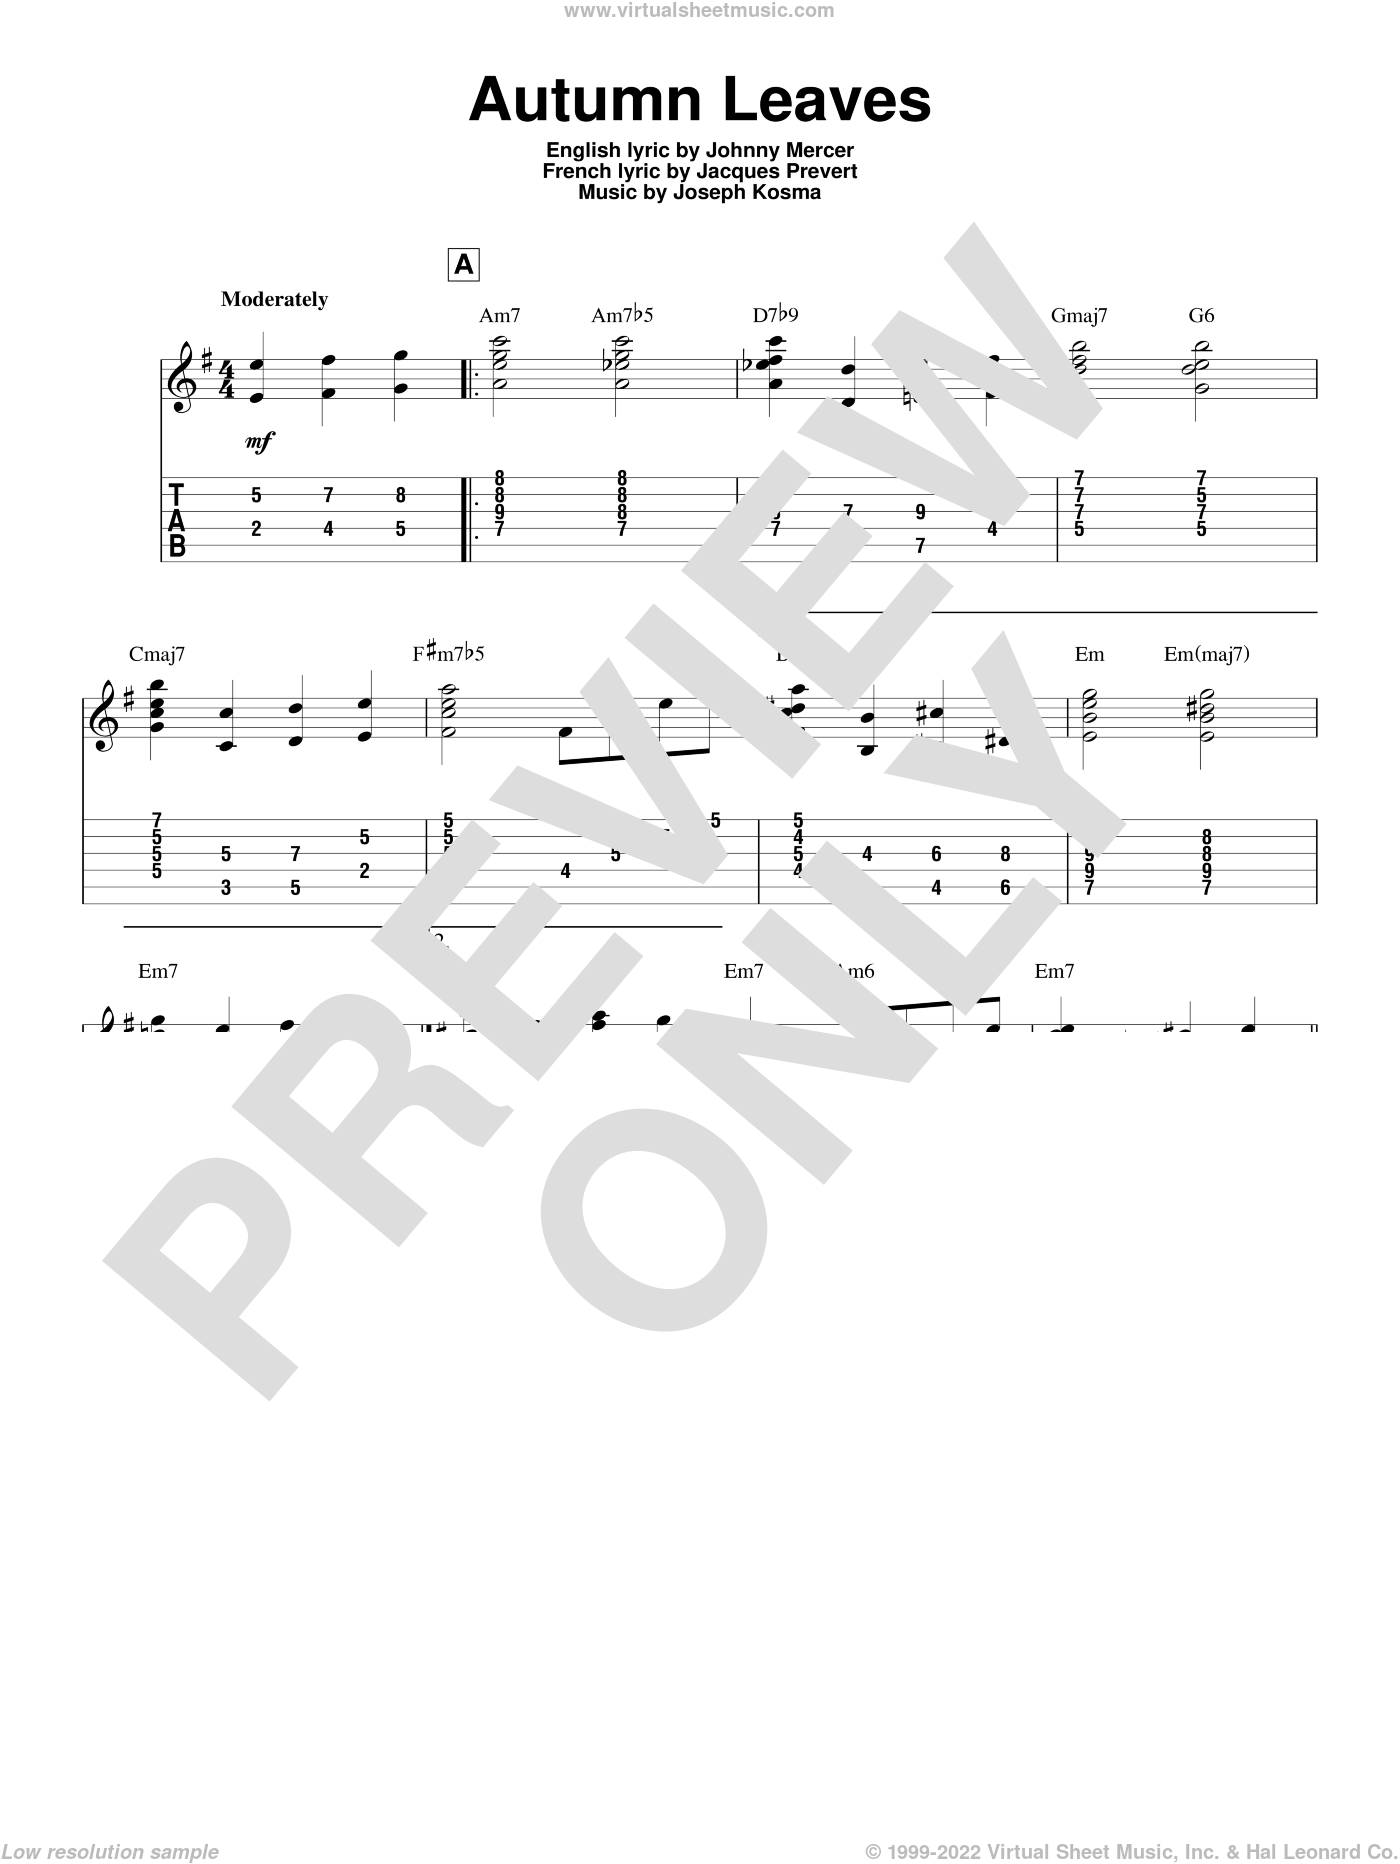 Autumn Leaves sheet music for guitar solo by Johnny Mercer, Jeff Arnold, Mitch Miller, Roger Williams, Jacques Prevert and Joseph Kosma, intermediate skill level